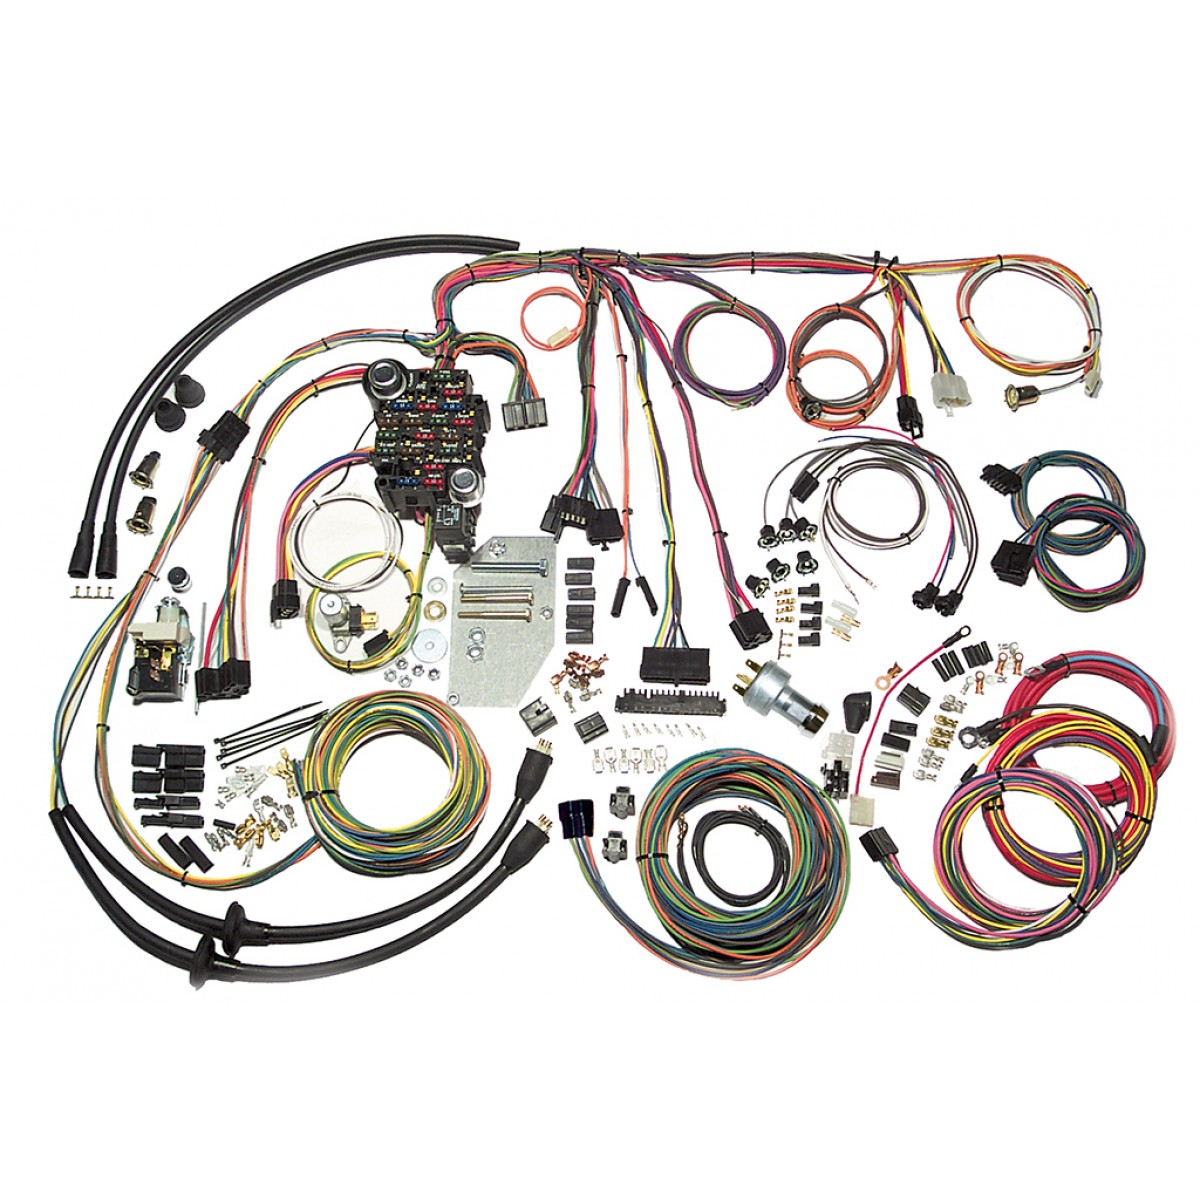 hight resolution of complete wiring harness kit 1955 1956 chevy tri five belair part 56 chevy bel air wiring harness source wiring diagram